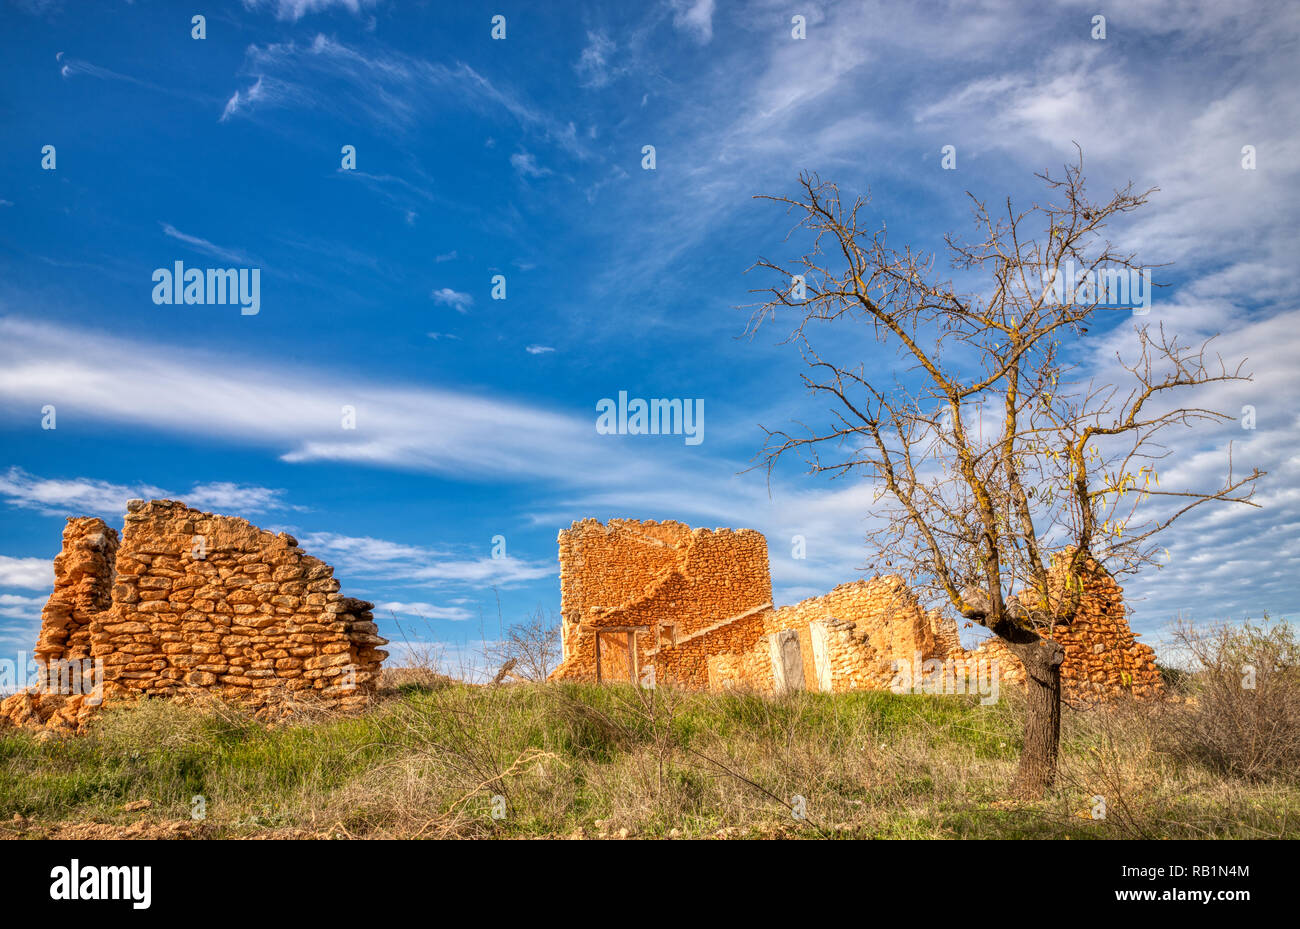 A Landscape Photo With A Single Dead Tree And The Ruins Of